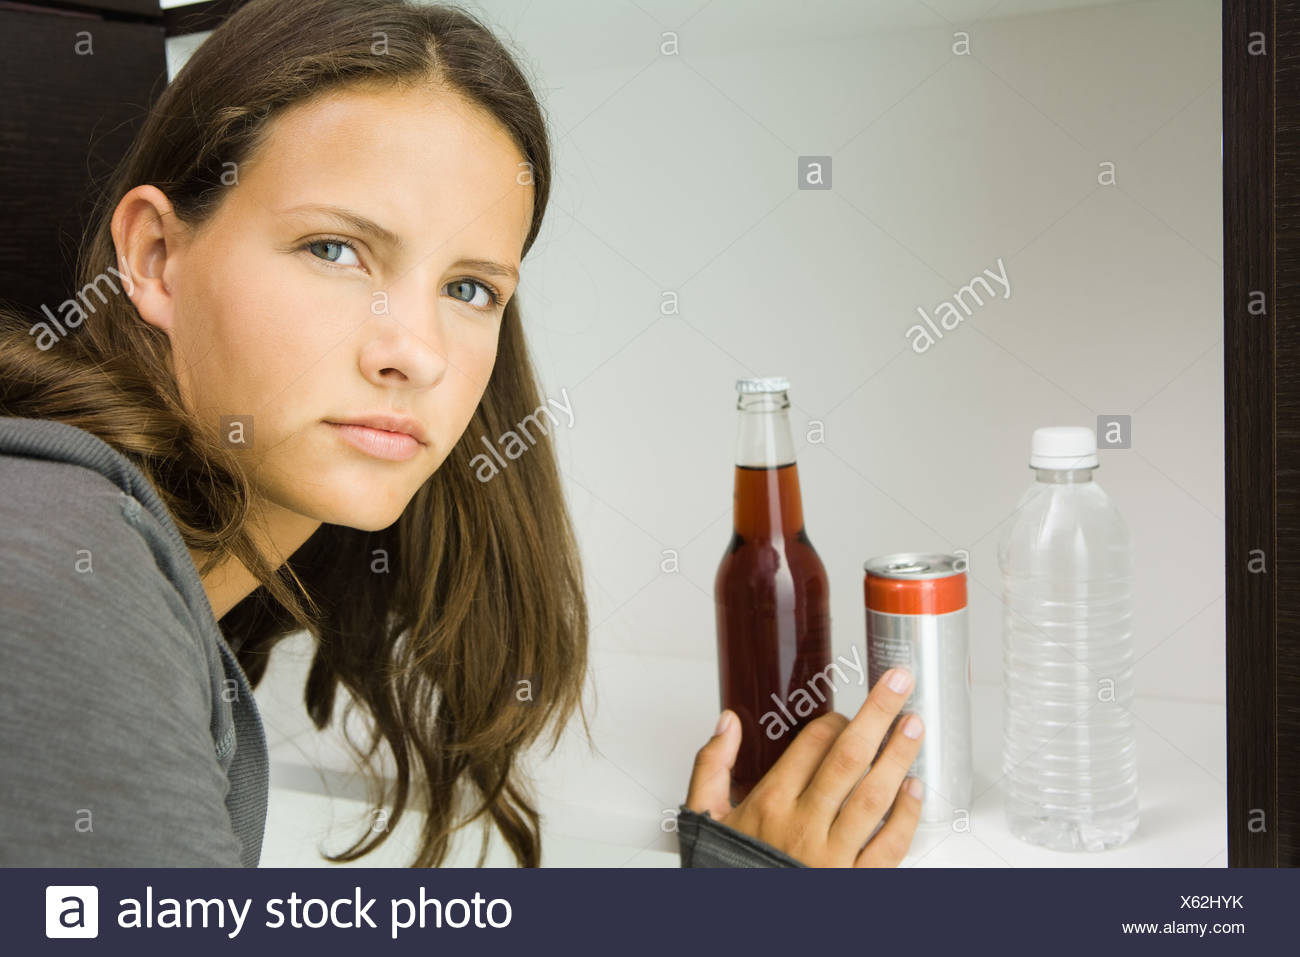 Teen girl next to variety of drinks, reaching for bottled soft drink - Stock Image